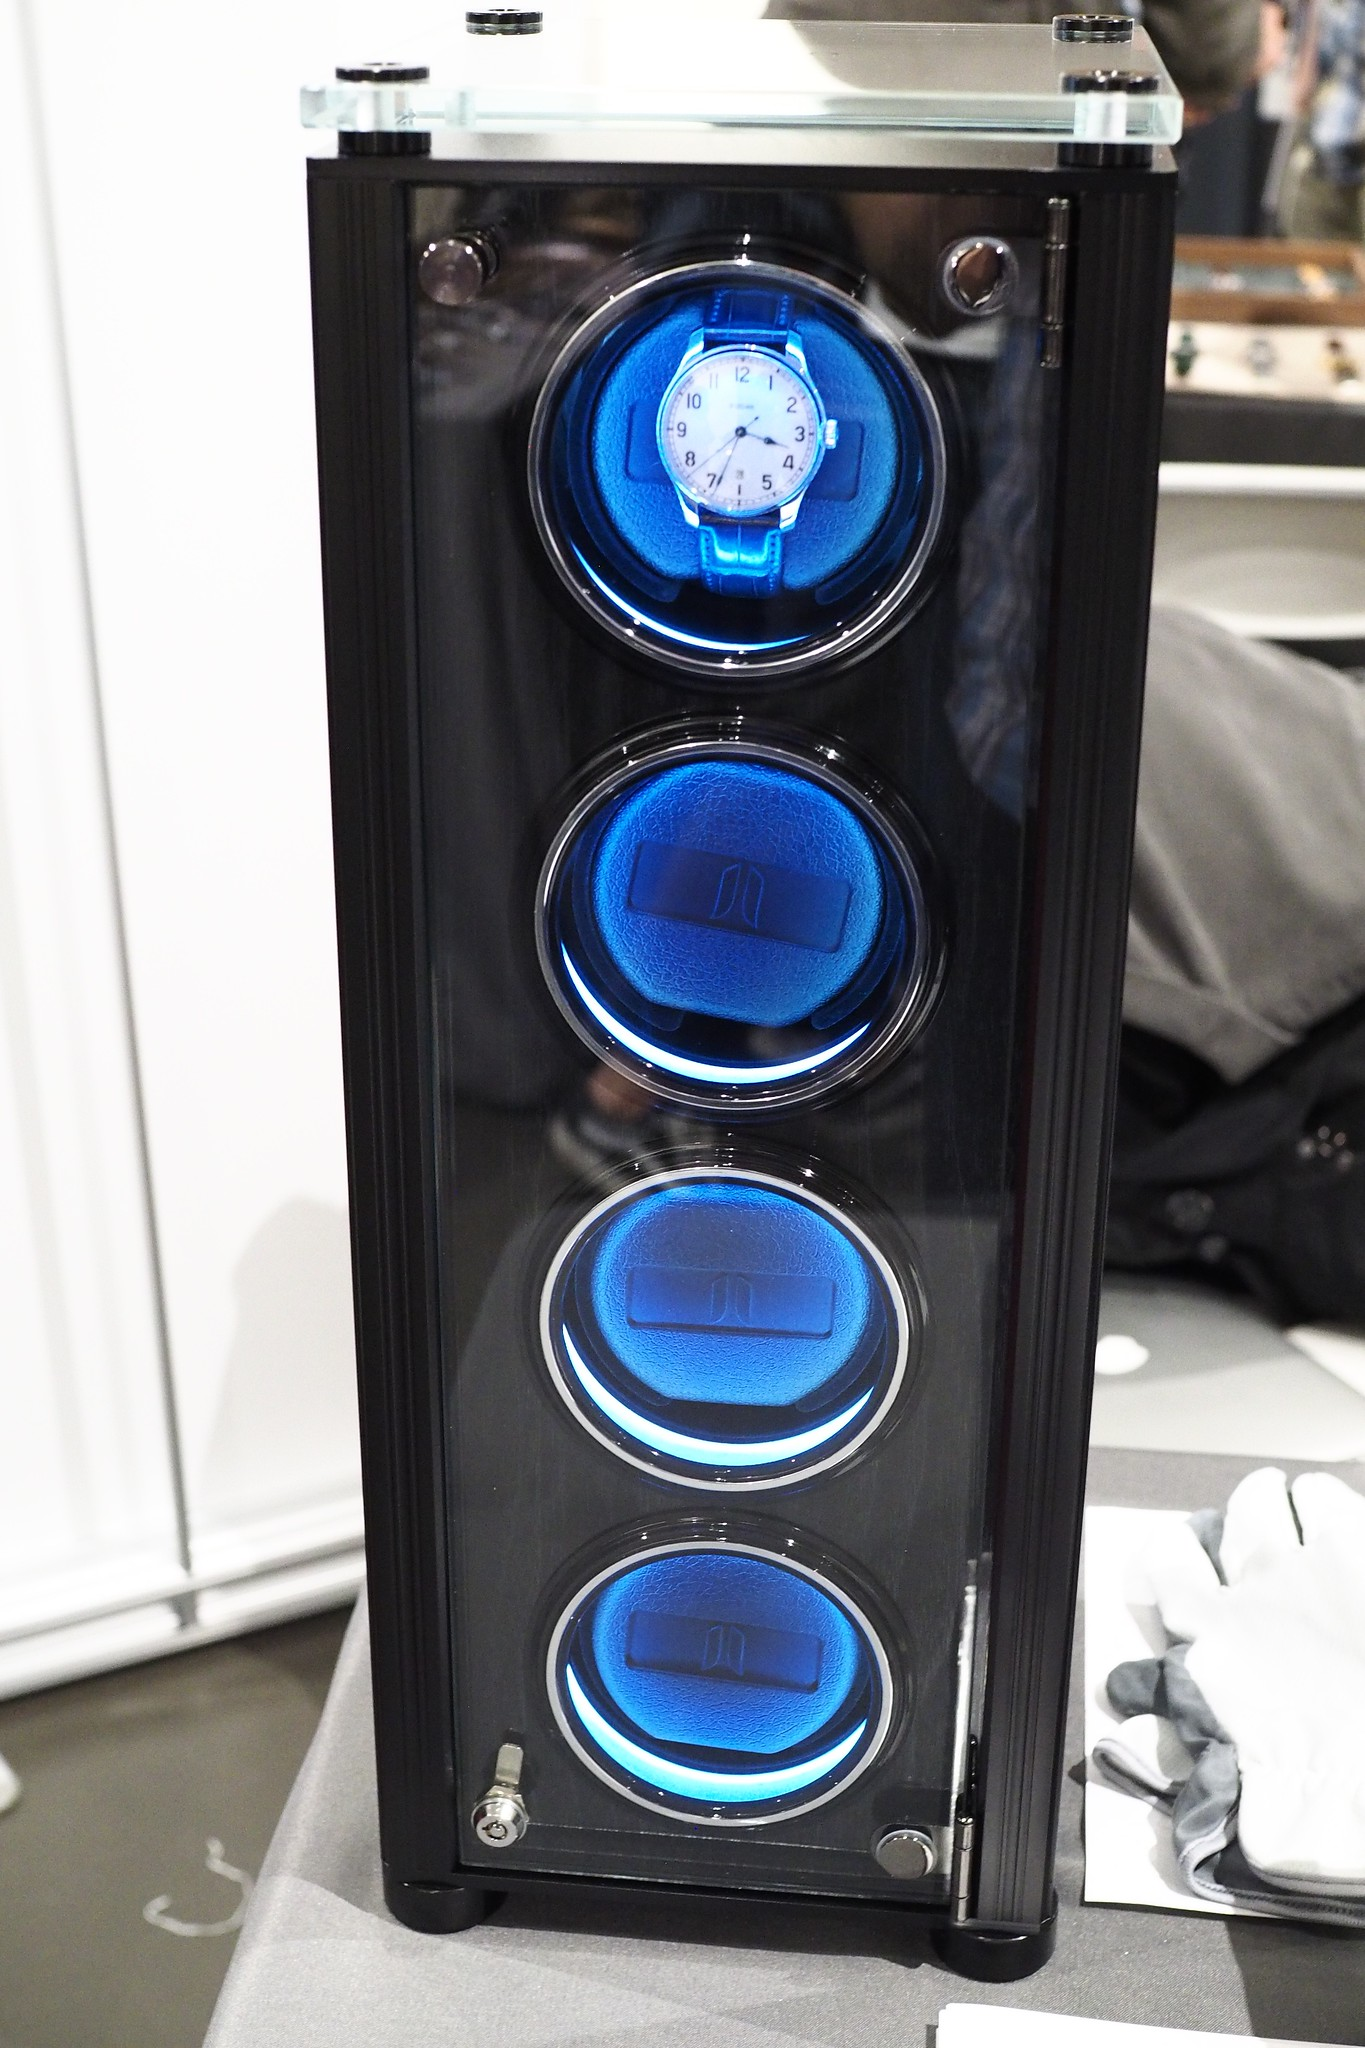 Juvo 4 Watch Winder Tower